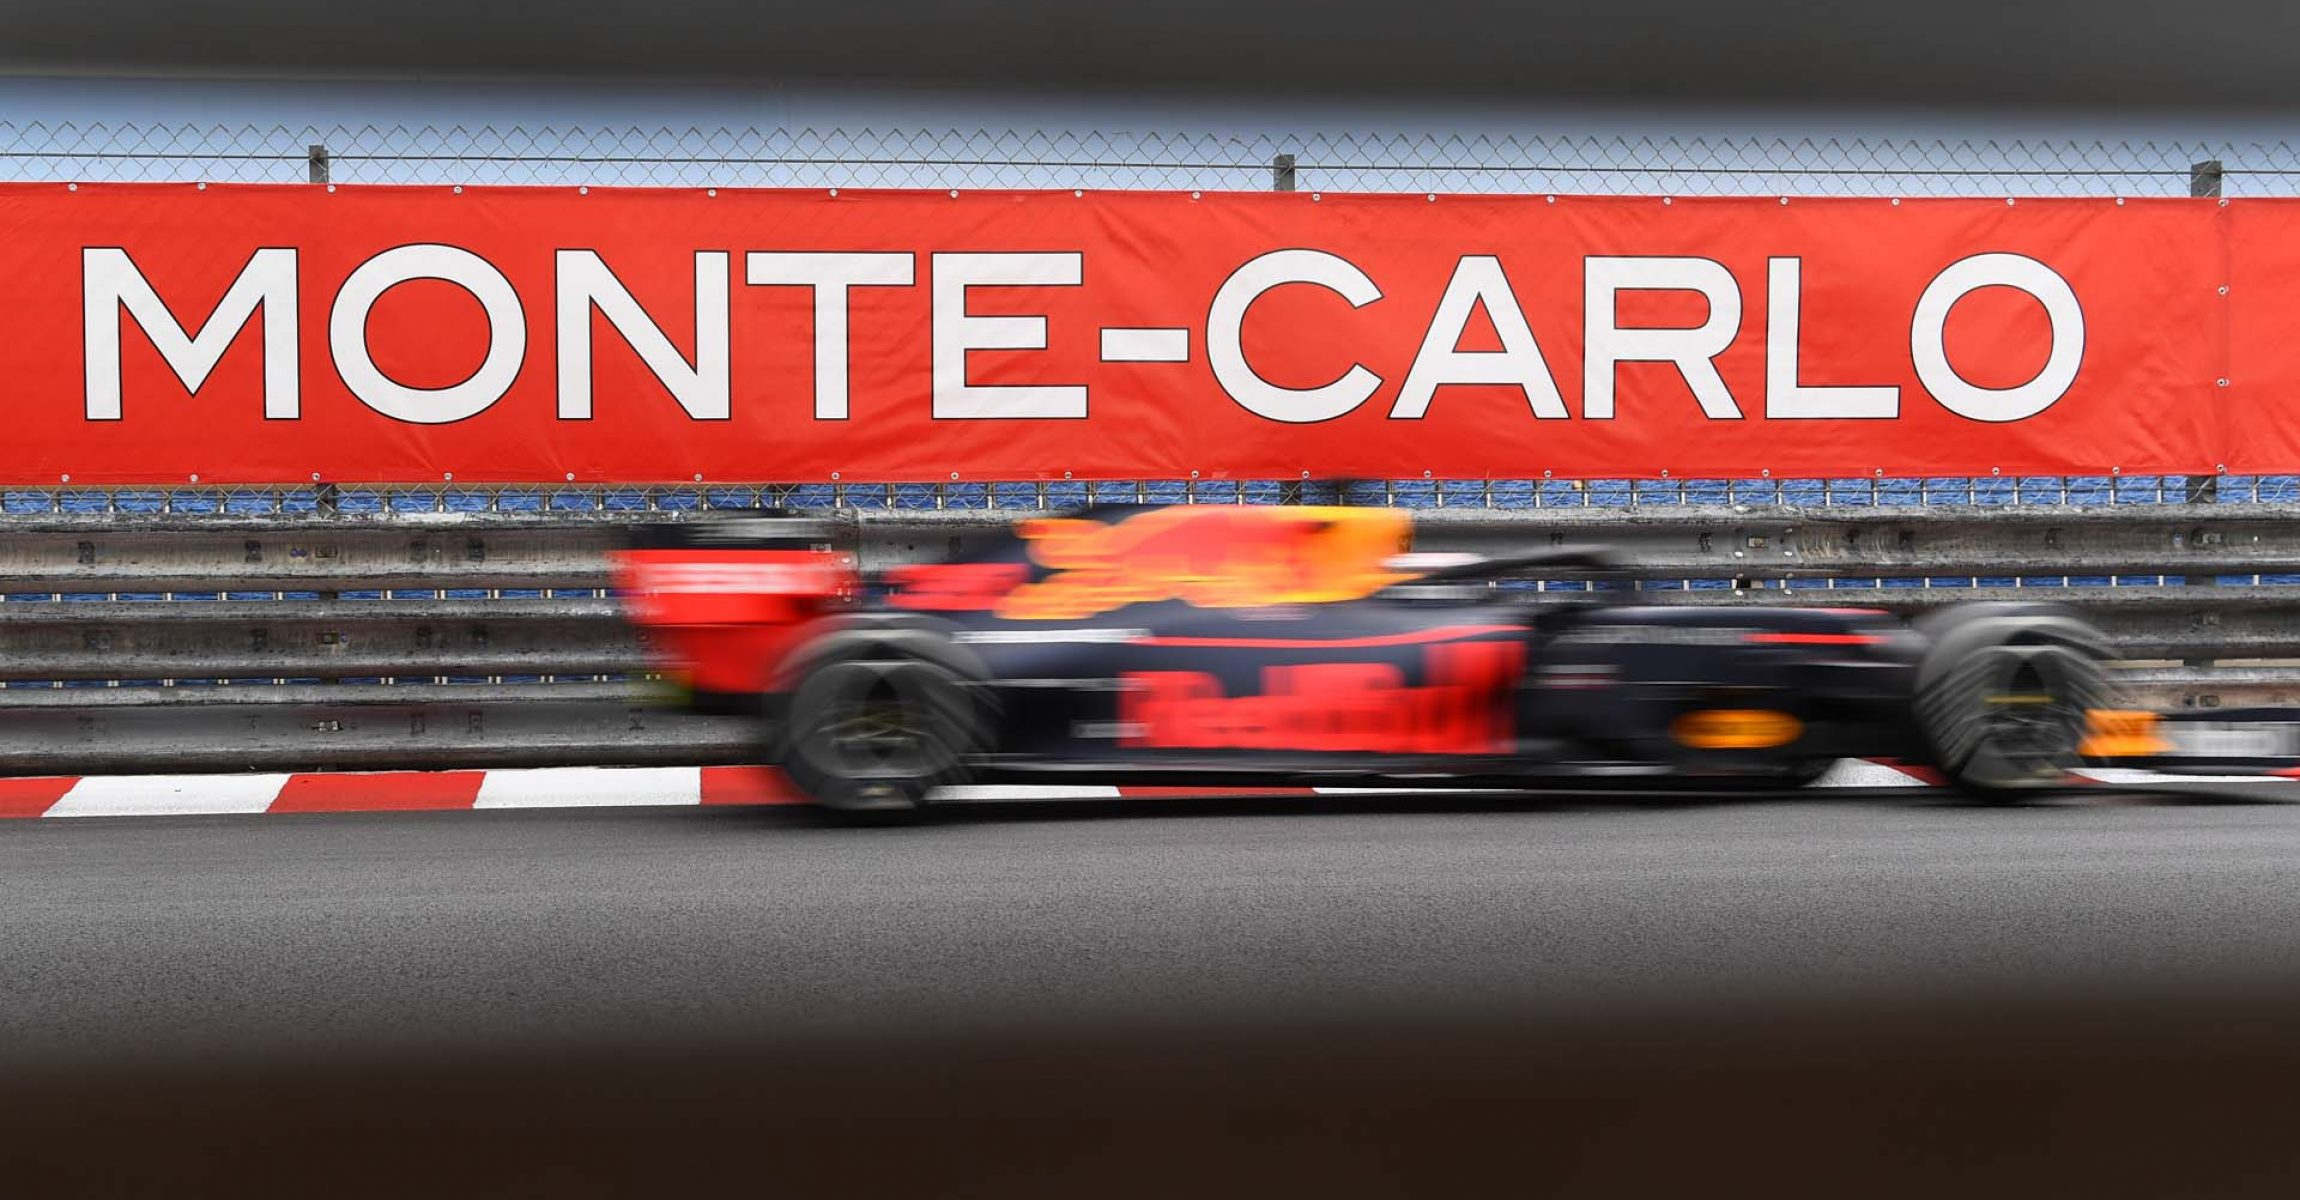 MONTE-CARLO, MONACO - MAY 26: Max Verstappen of the Netherlands driving the (33) Aston Martin Red Bull Racing RB15 on track during the F1 Grand Prix of Monaco at Circuit de Monaco on May 26, 2019 in Monte-Carlo, Monaco. (Photo by Michael Regan/Getty Images) // Getty Images / Red Bull Content Pool  // AP-1ZF1RNVBW2111 // Usage for editorial use only // Please go to www.redbullcontentpool.com for further information. //